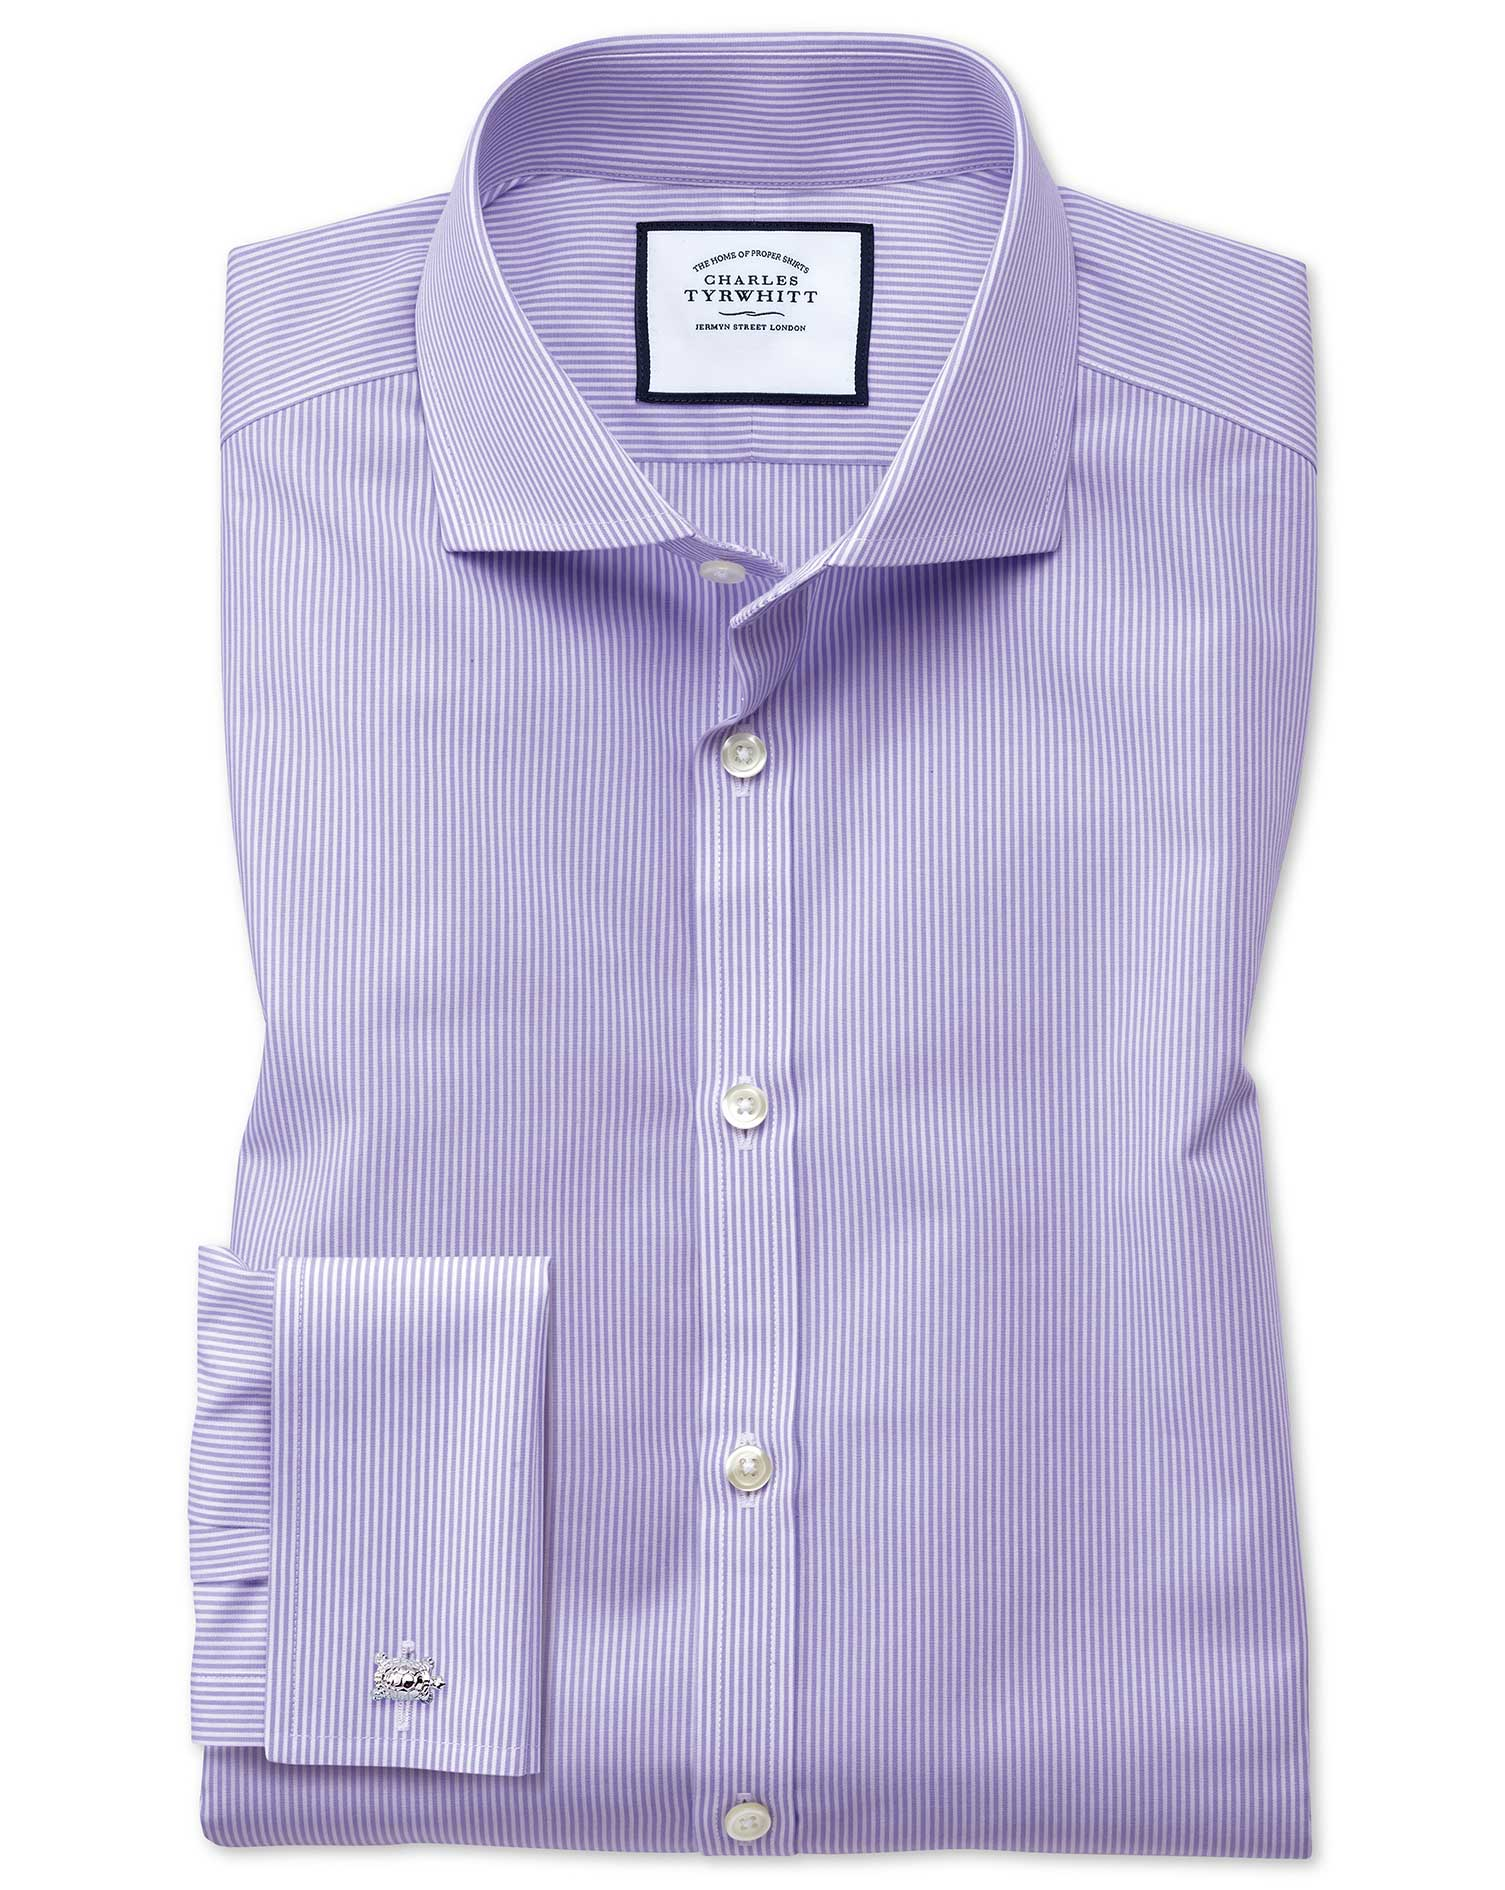 Extra Slim Fit Cutaway Collar Non-Iron Bengal Stripe Lilac Cotton Formal Shirt Double Cuff Size 15.5